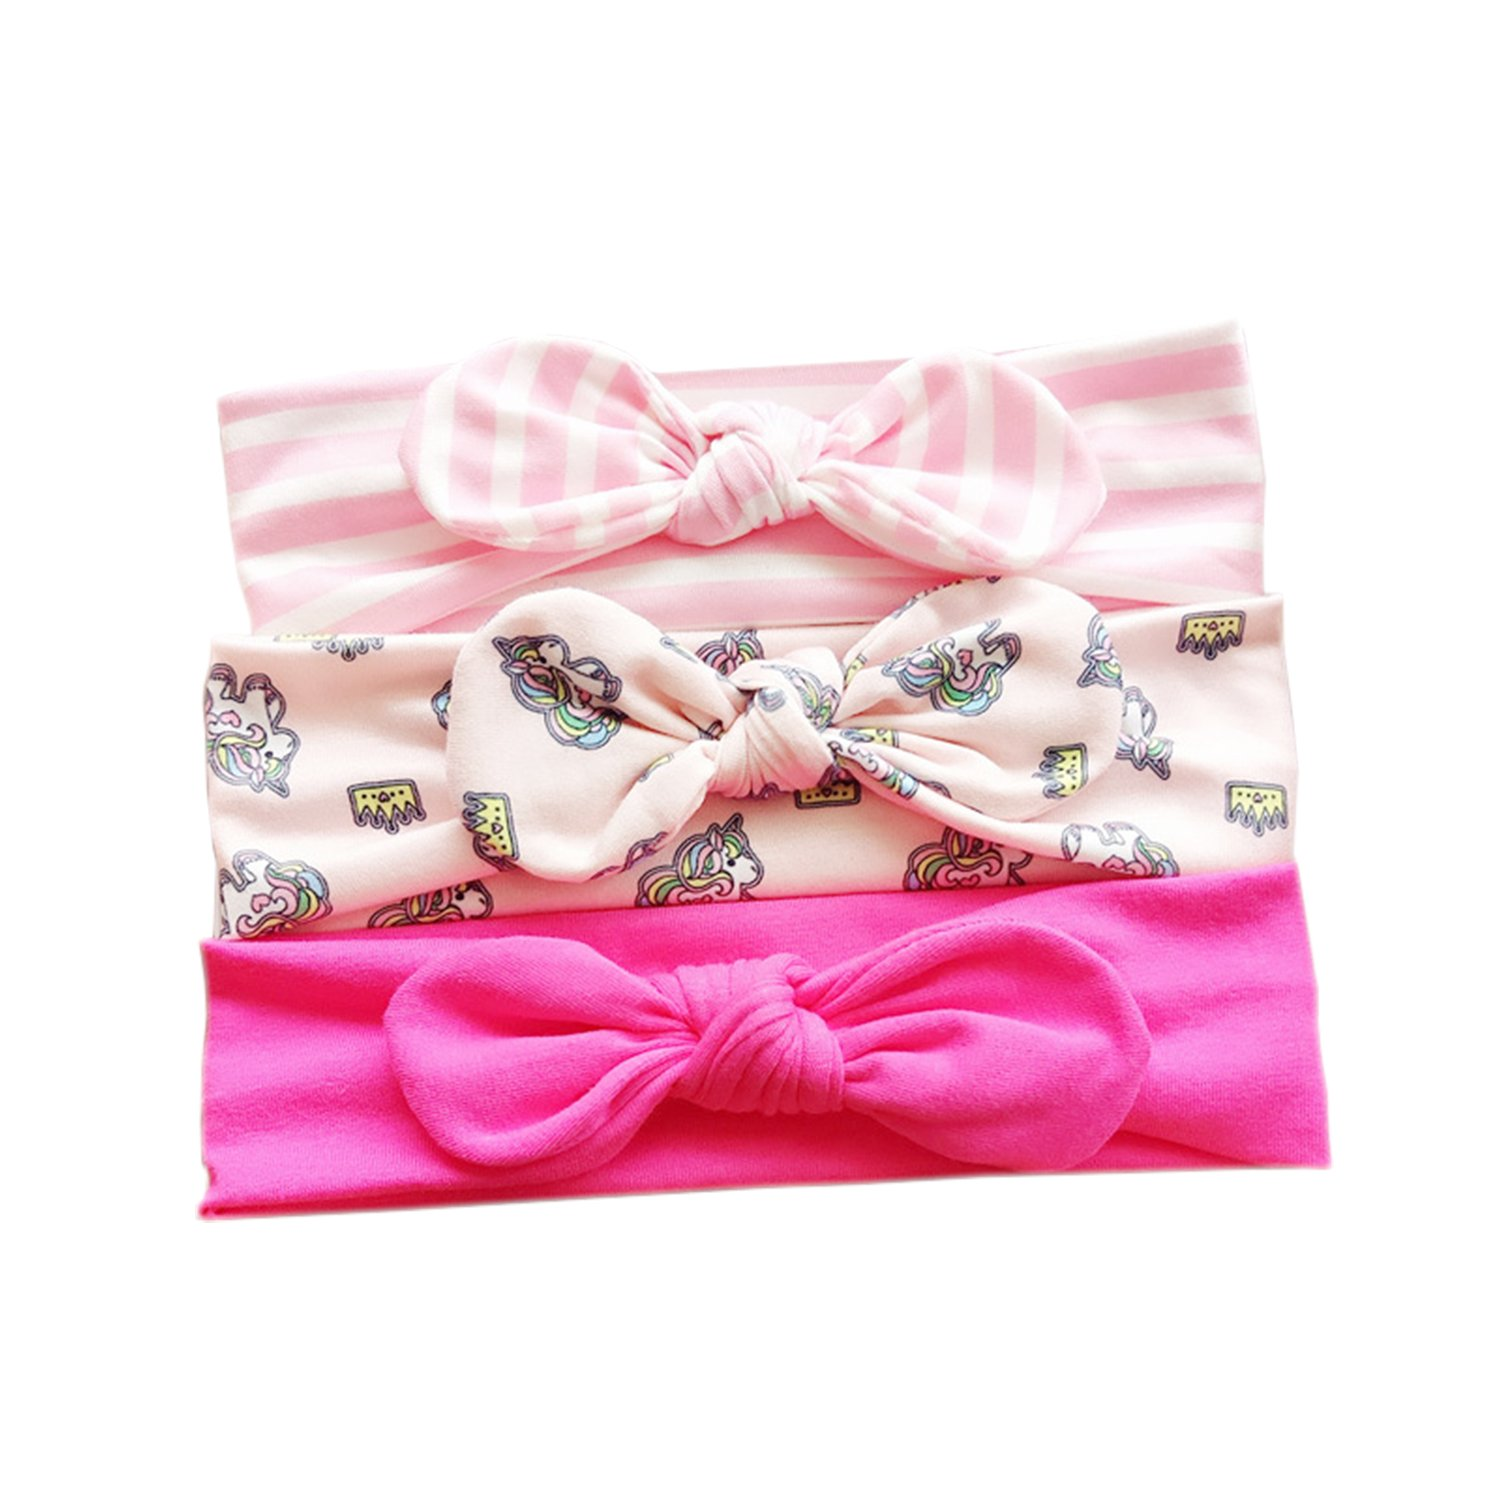 COUXILY Baby's Cotton Headband Gift Set Turban Knotted Cotton Head Wraps, Pack of 3 (G03)